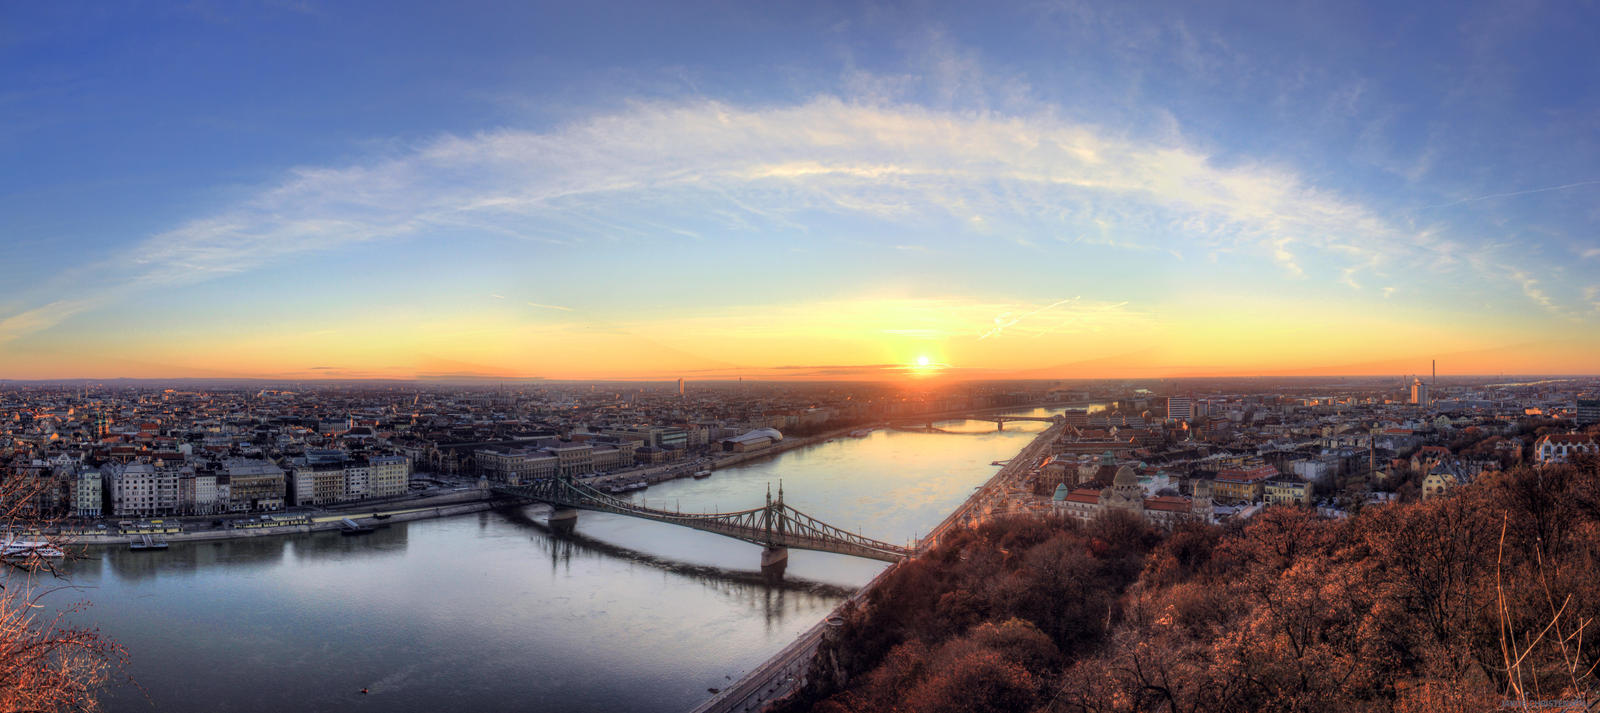 Good morning Sun, Budapest, Hungary by FlawlessMonkey